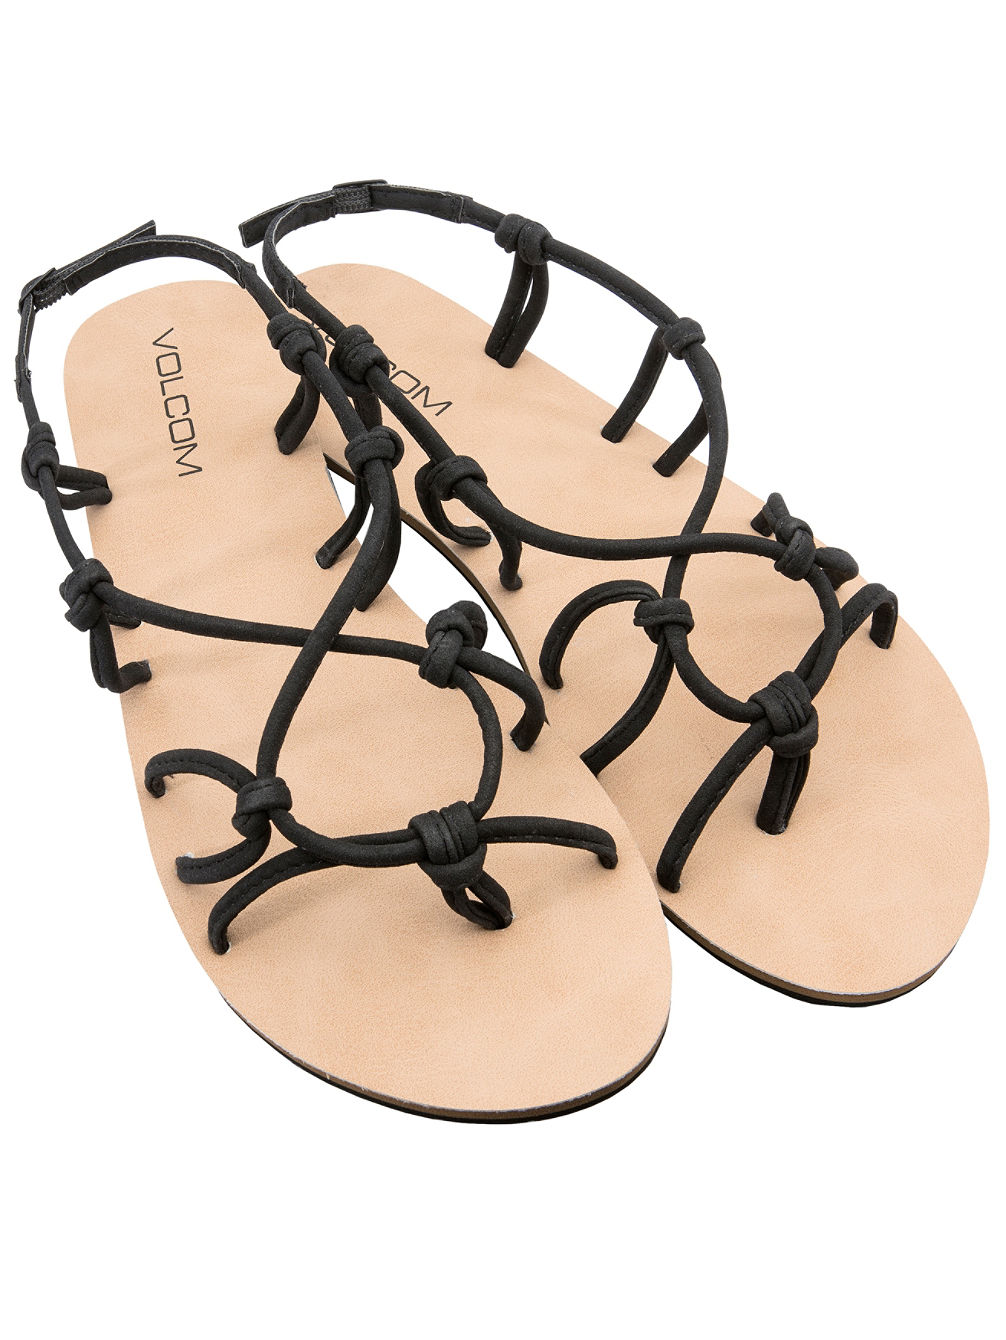 Whateversclever Sandals Women